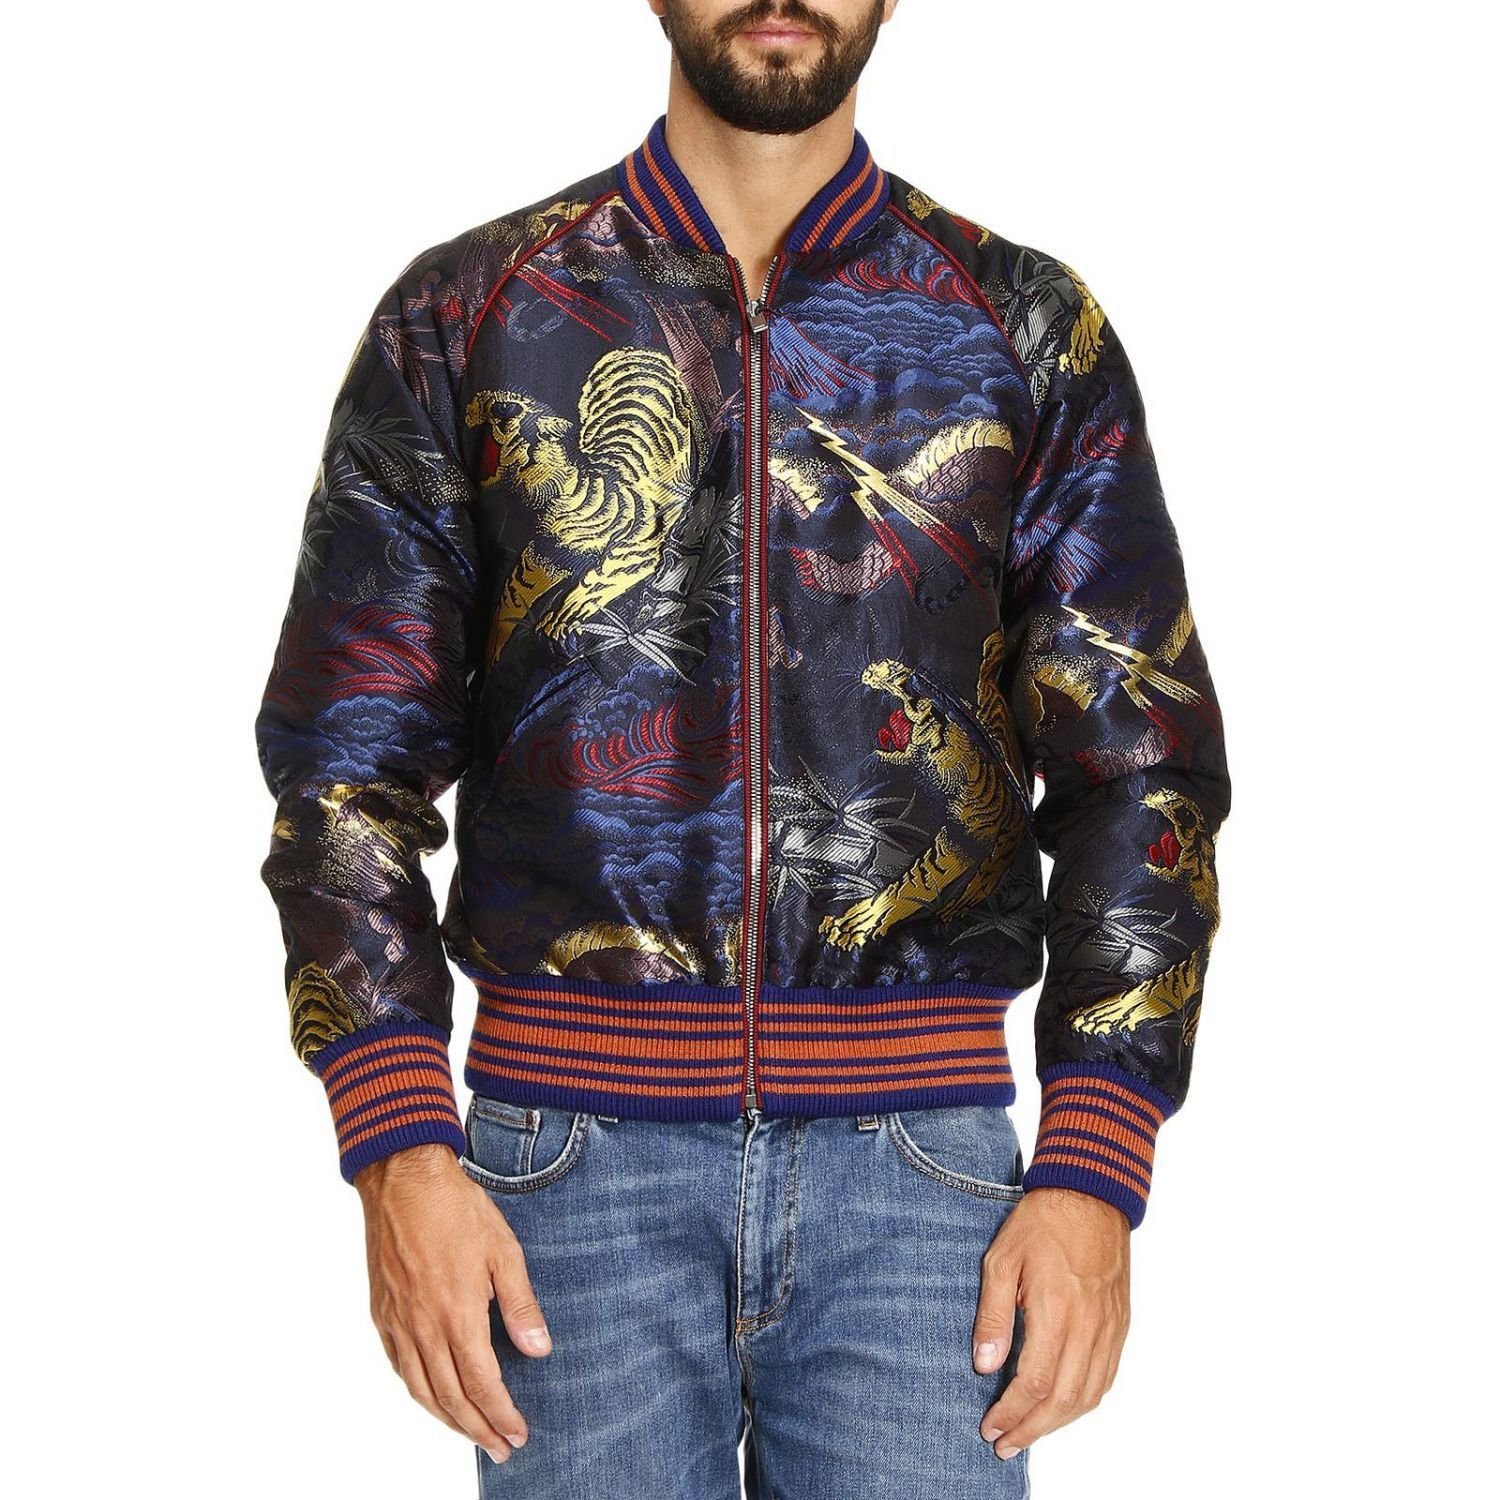 GUCCI JACKET SILK MIXED BROCADE BOMBER JACKET WITH TIGER